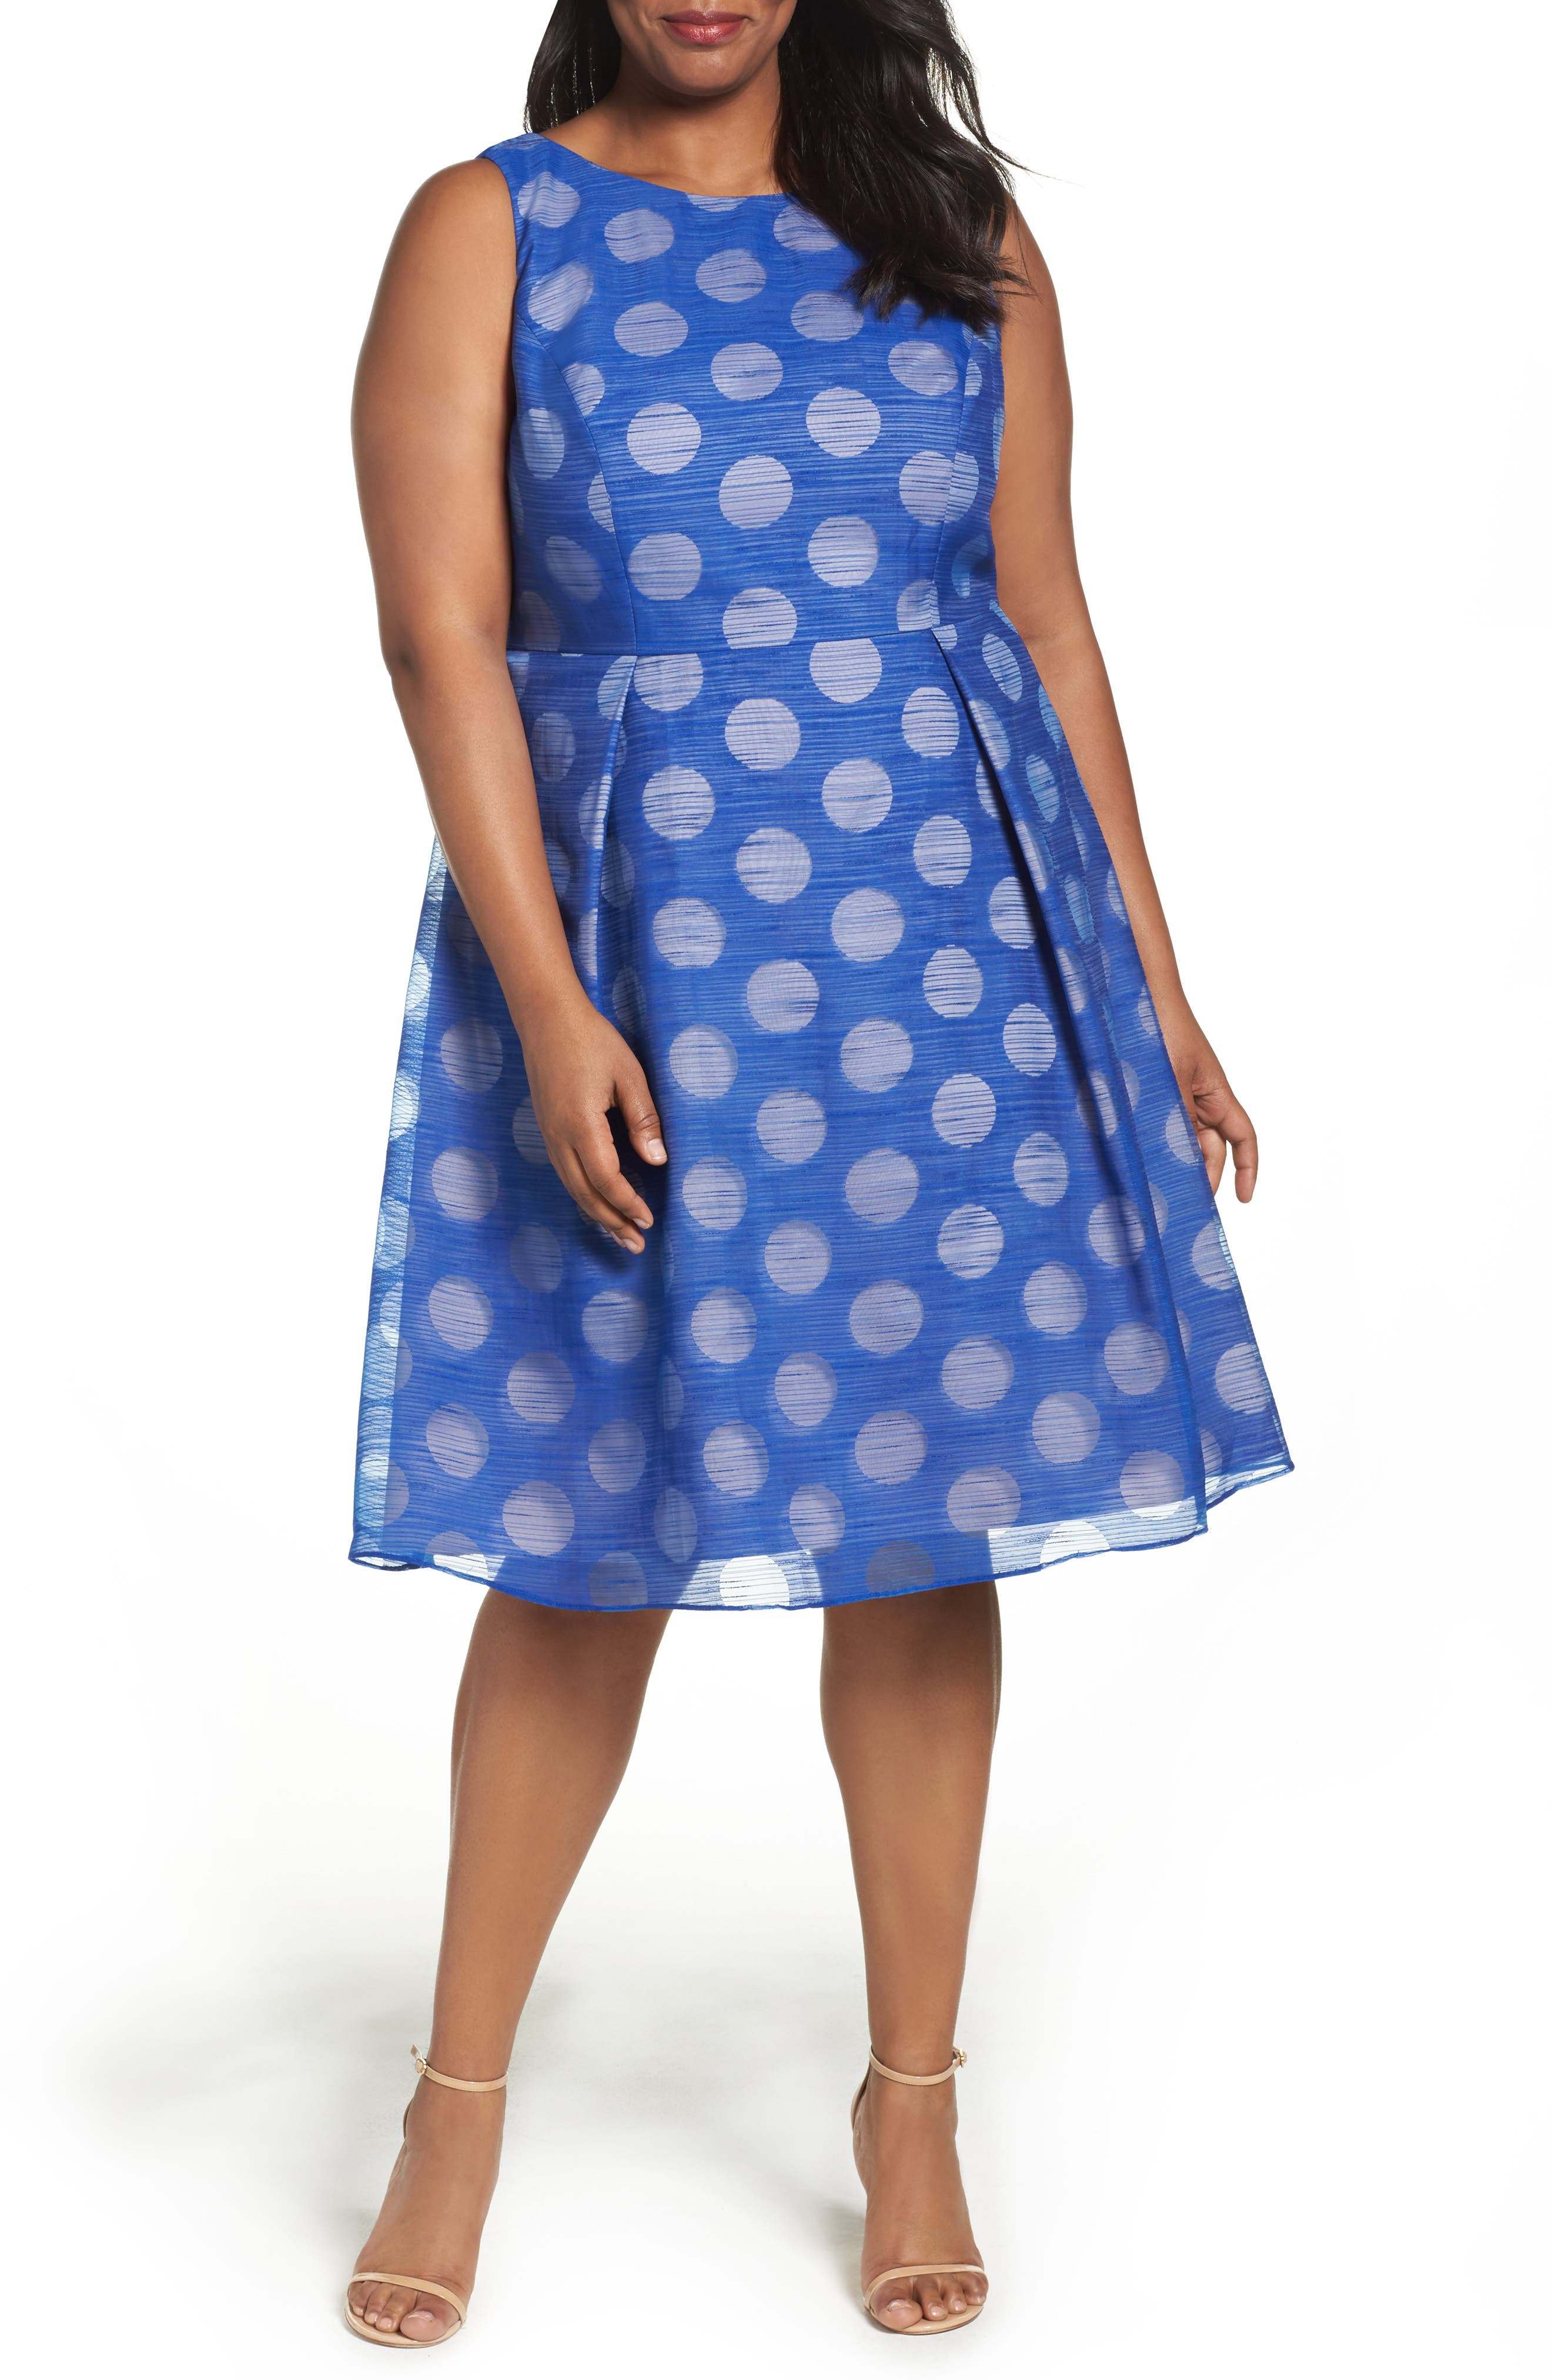 Alternate Image 1 Selected - Adrianna Papell Pop Dot Burnout Fit & Flare Dress (Plus Size)